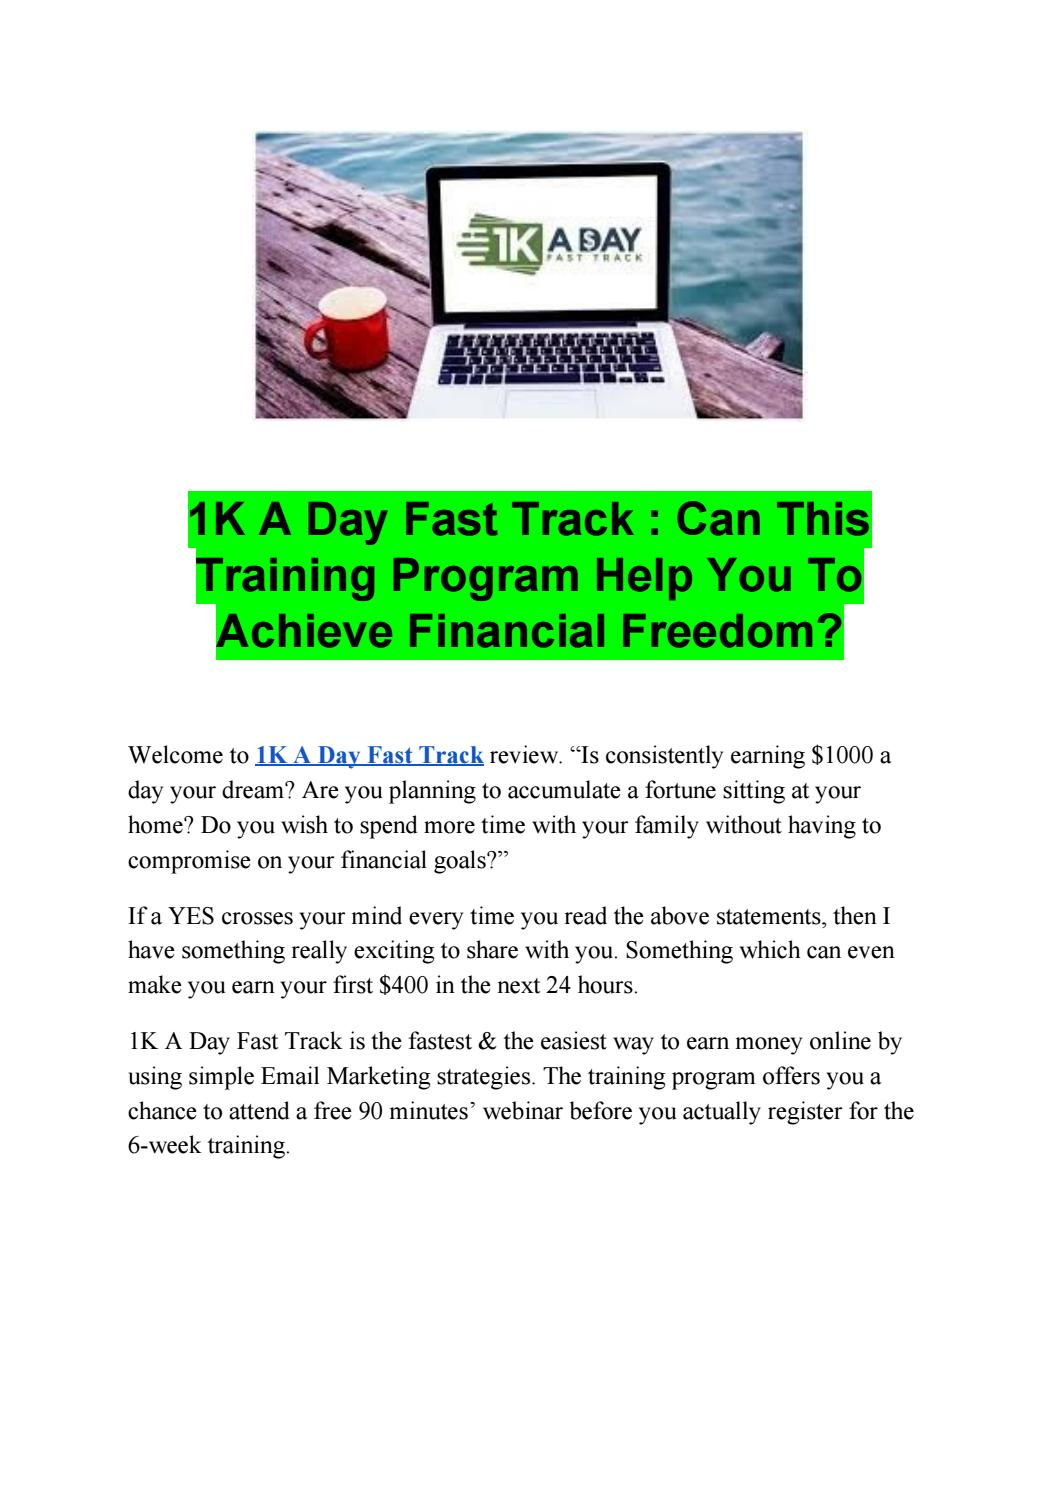 Length 1k A Day Fast Track Training Program